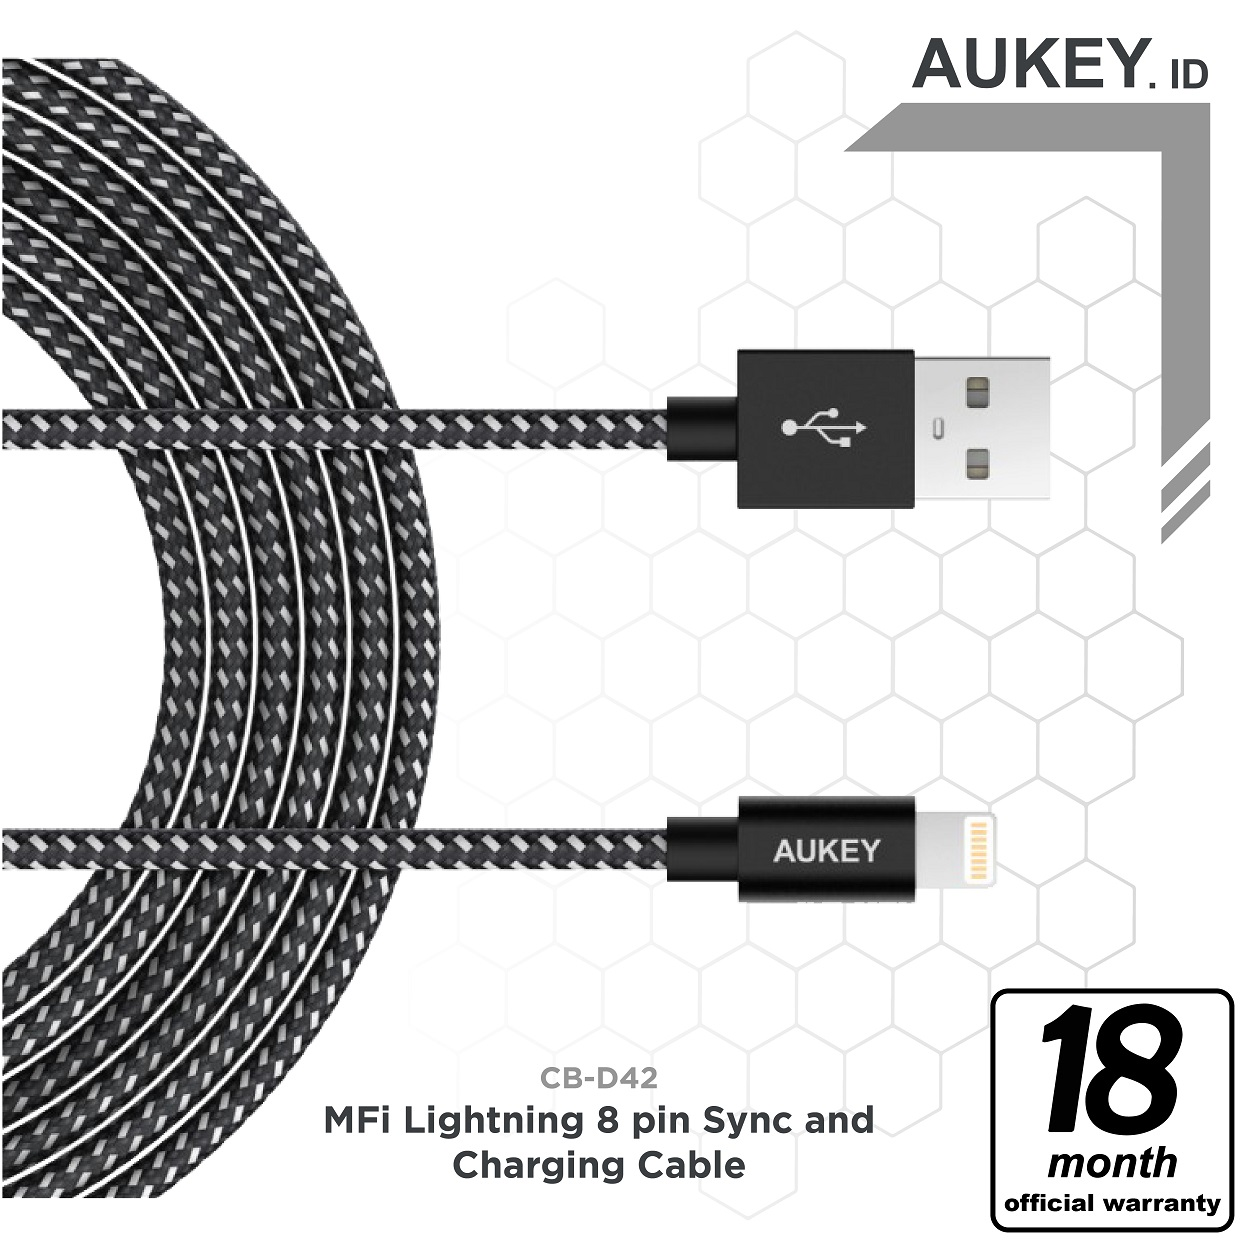 Jual Free Ongkiraukey Lightning Cable 2 M Braided Nylon Apple Mfi Orico Mdc 10 Strong Micro Usb Data Fast Charging Certified Cb D42 Black Aukey Indonesia